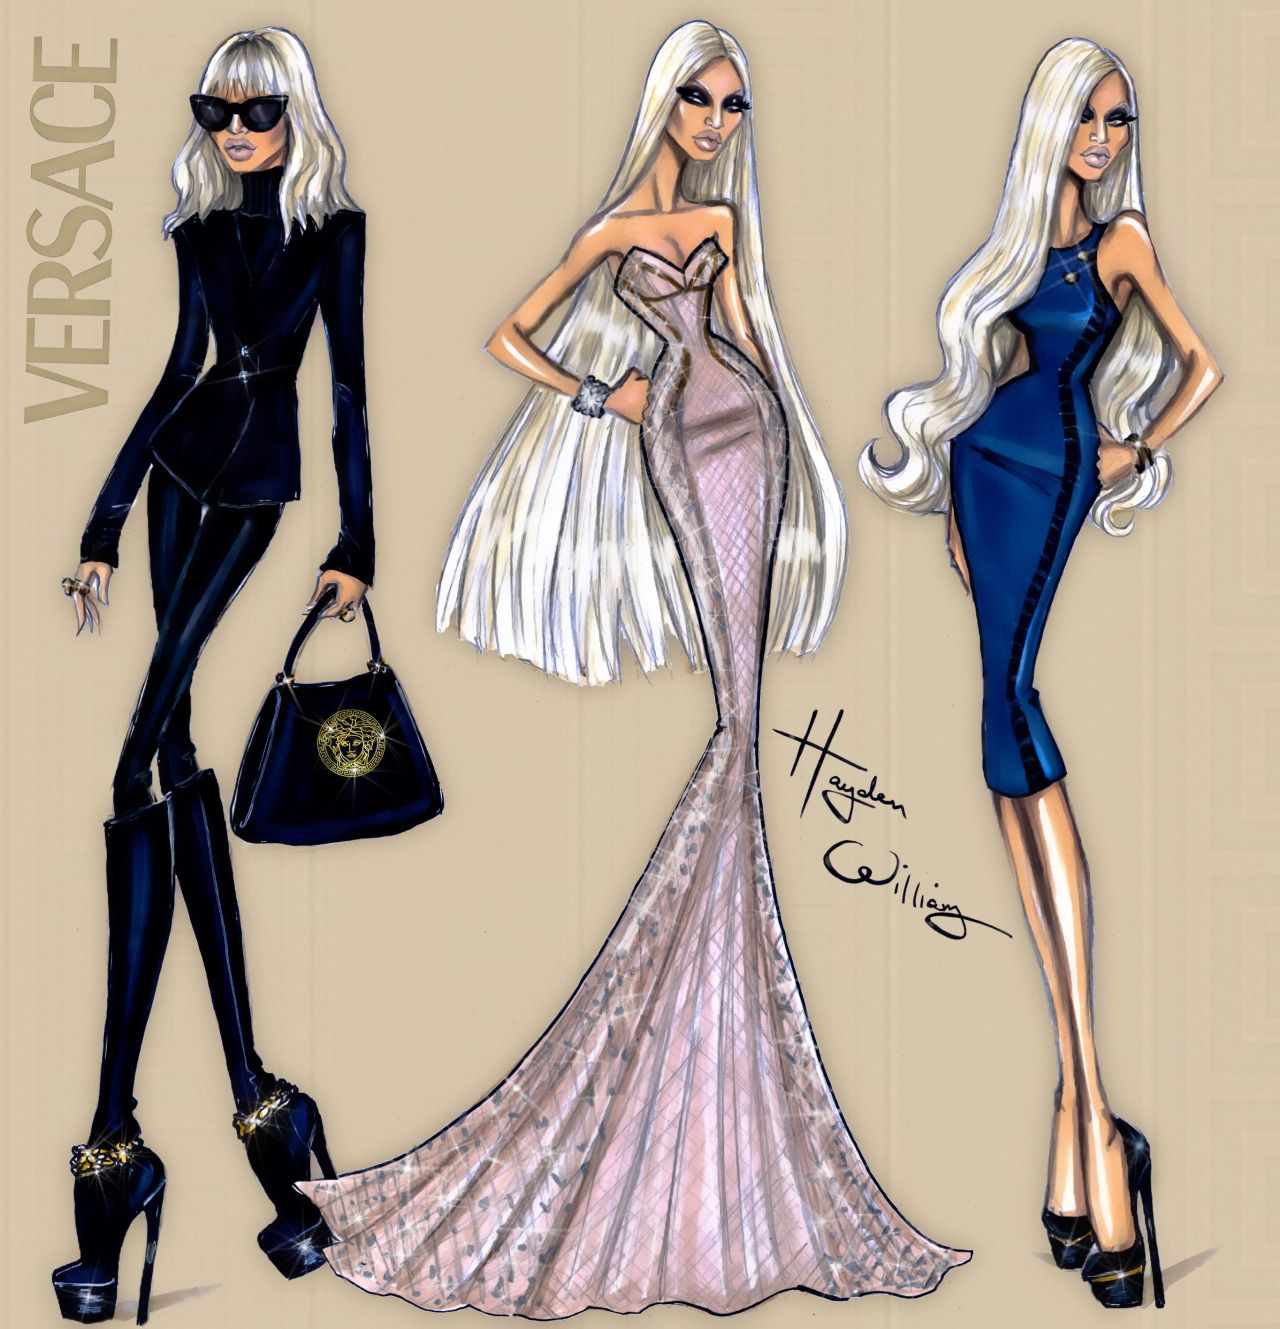 Donatella Versace Sketches